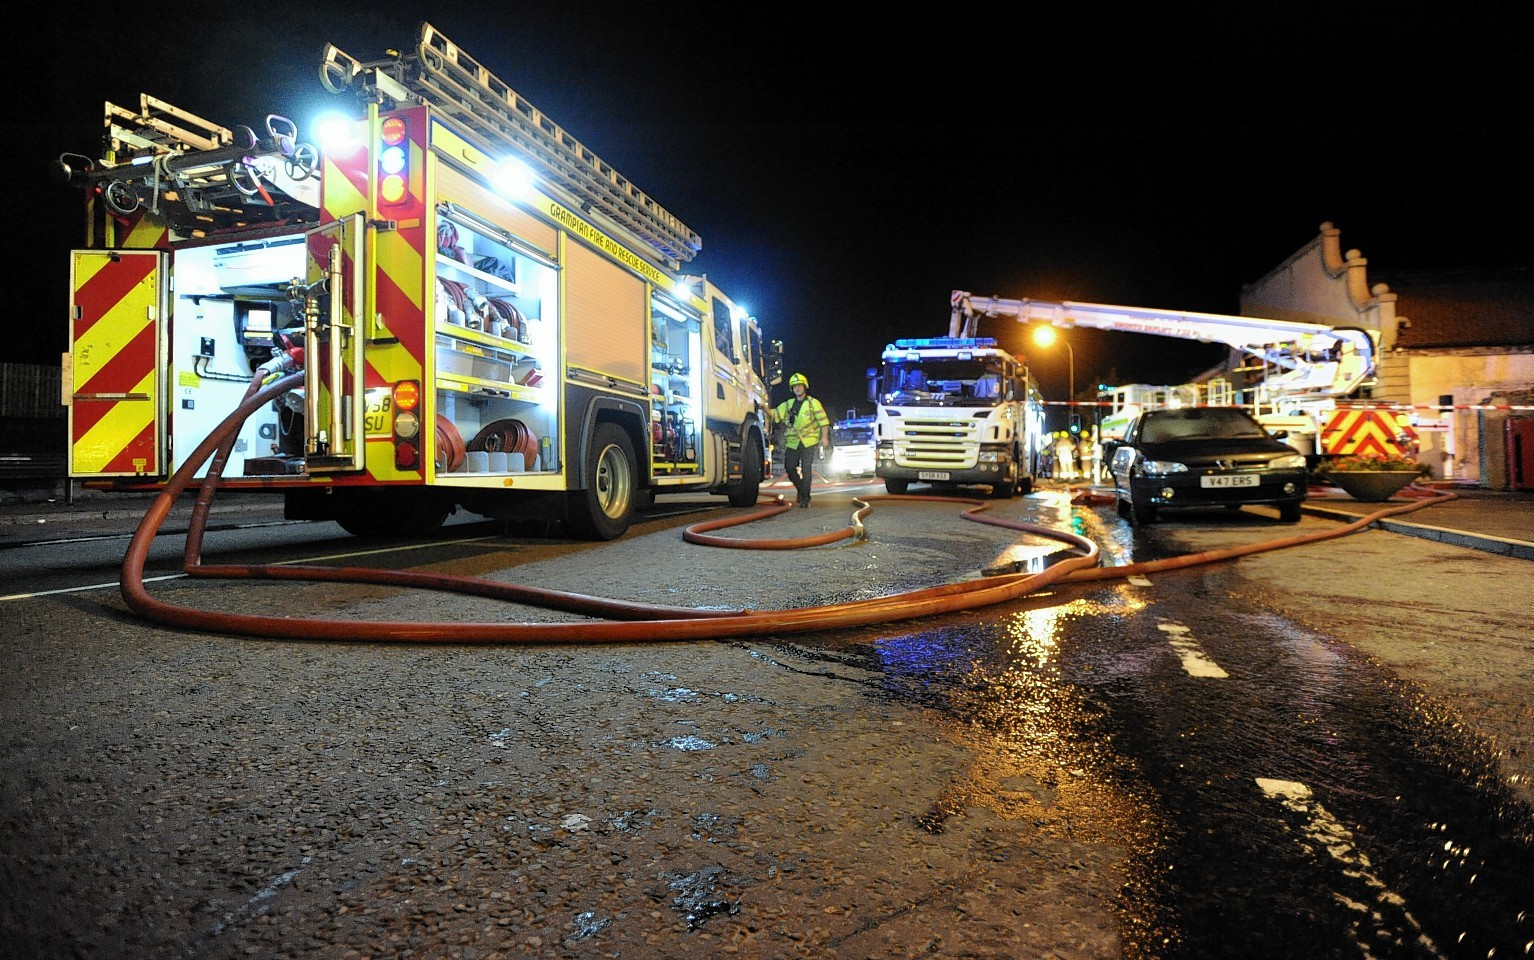 Fire services are hoping the public will attend organised celebrations